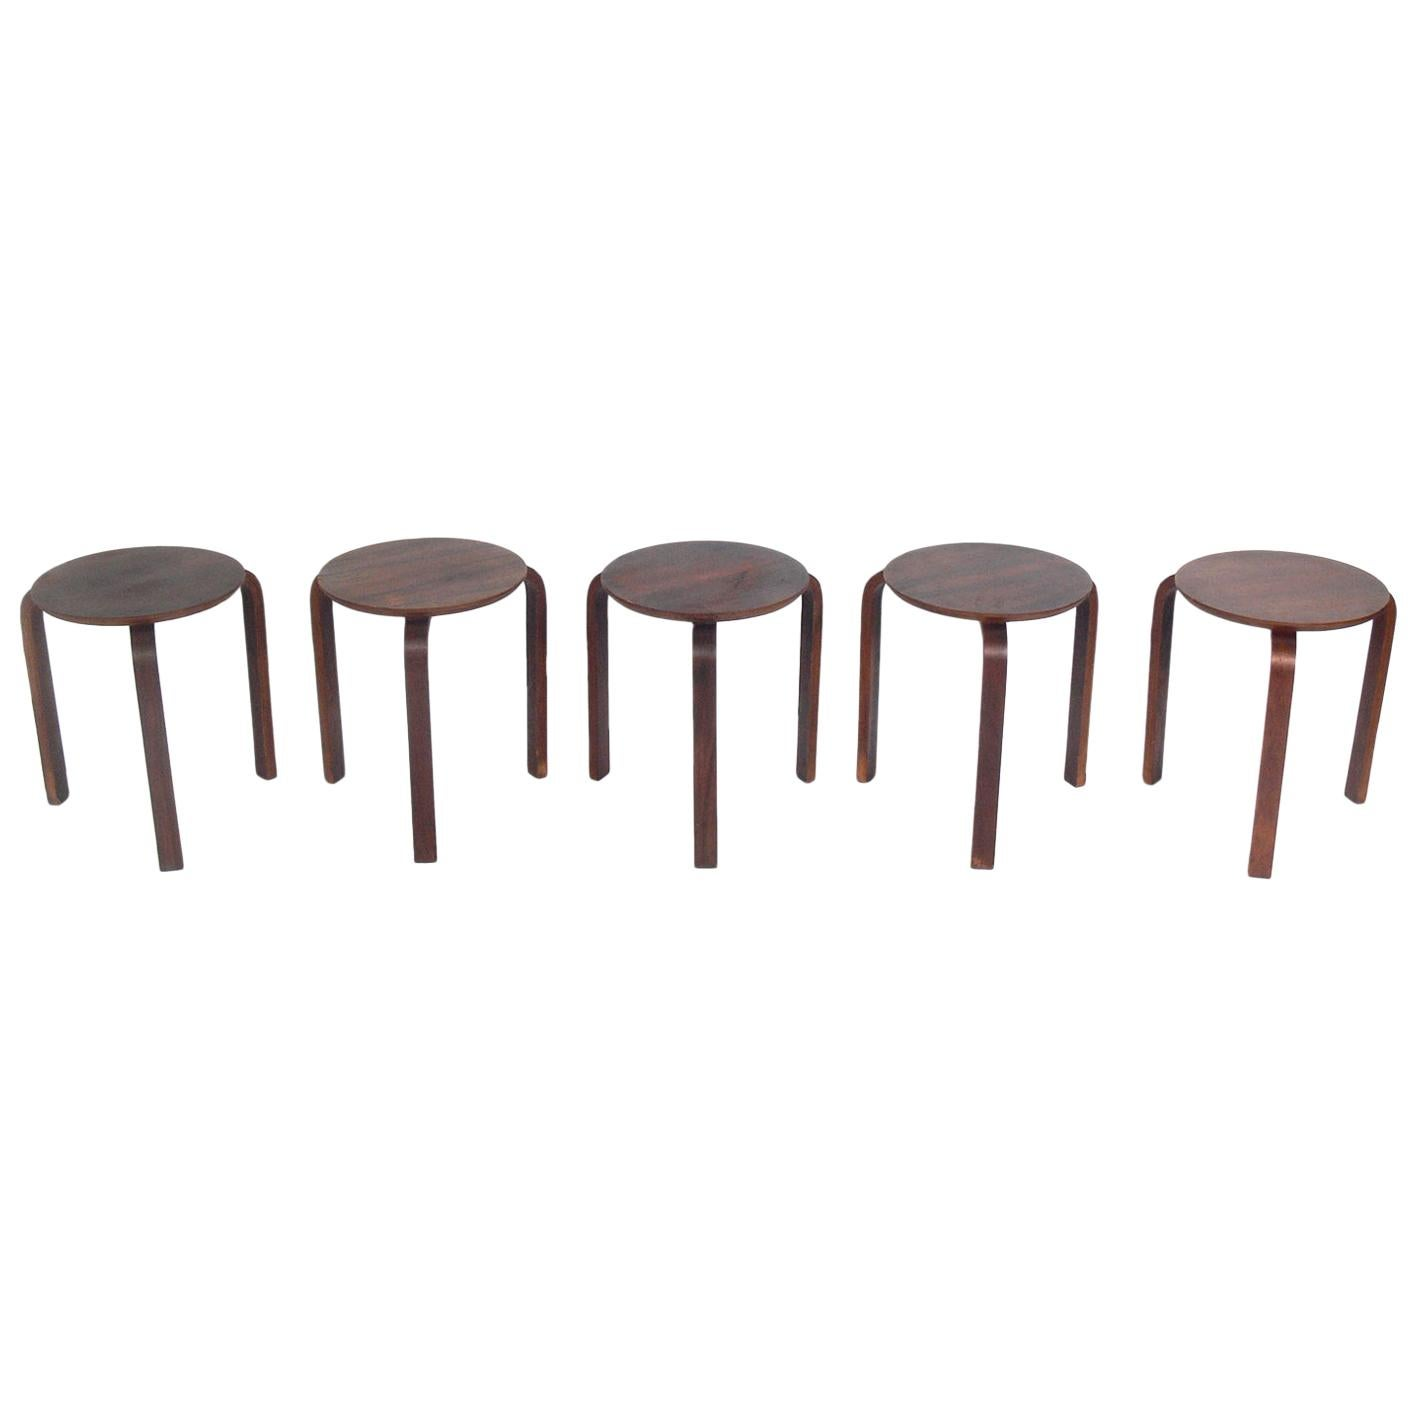 Five Bentwood Stacking Tables or Stools in the Manner of Alvar Aalto